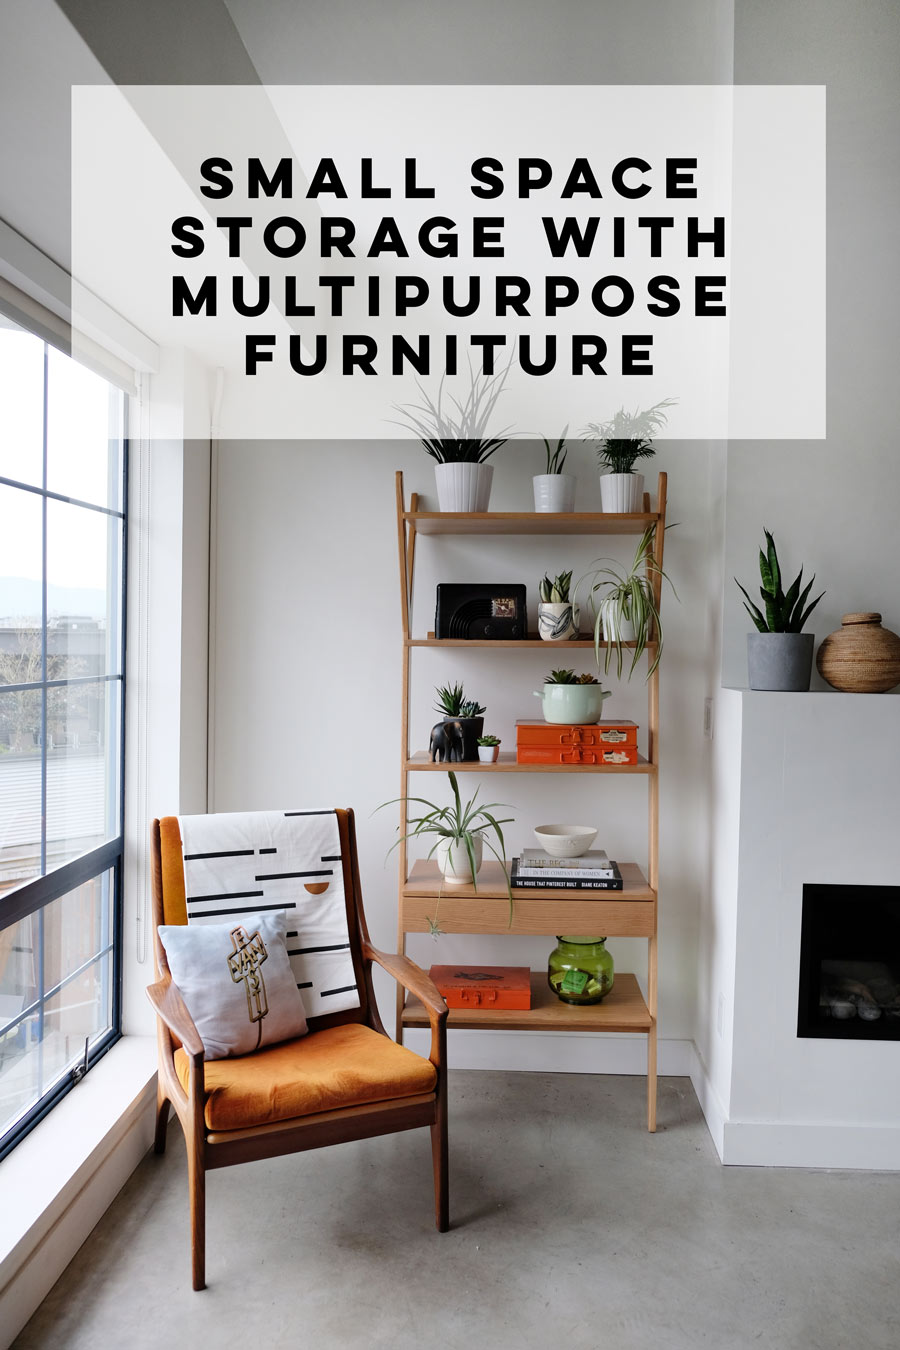 storage ideas for small spaces | Storage Ideas For Small Spaces - visual heart creative studio